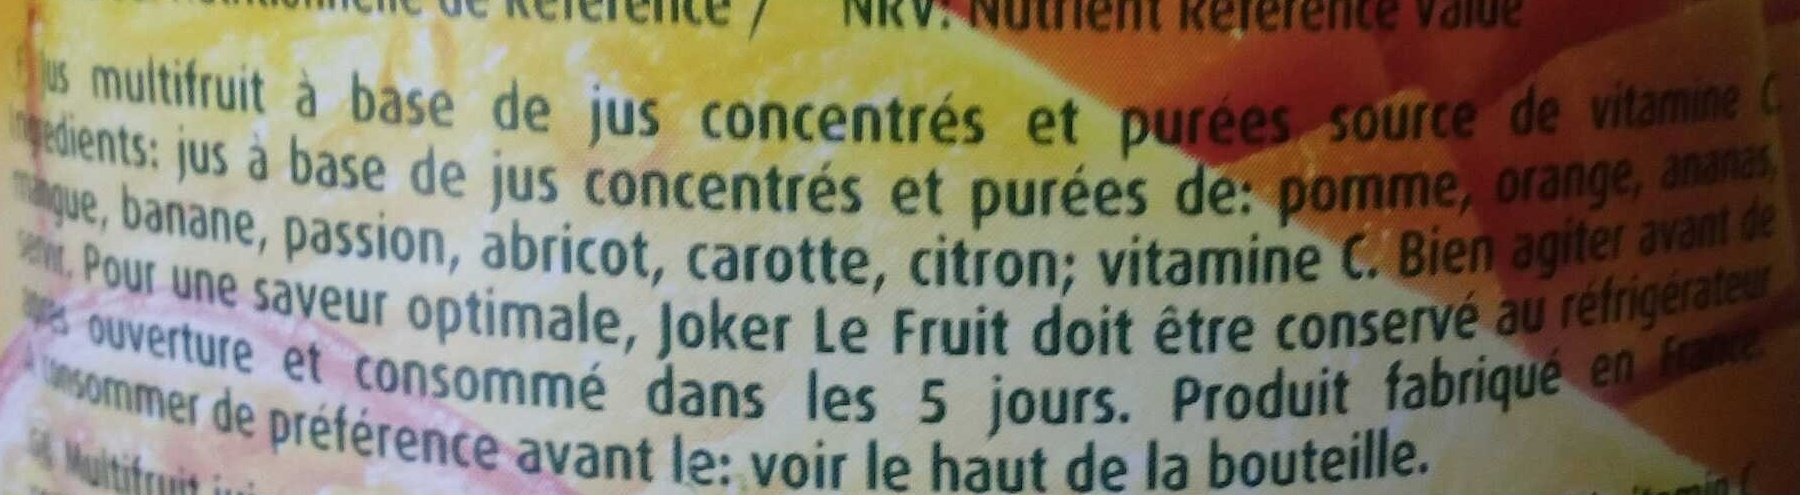 Le Fruit Multifruit - Ingrédients